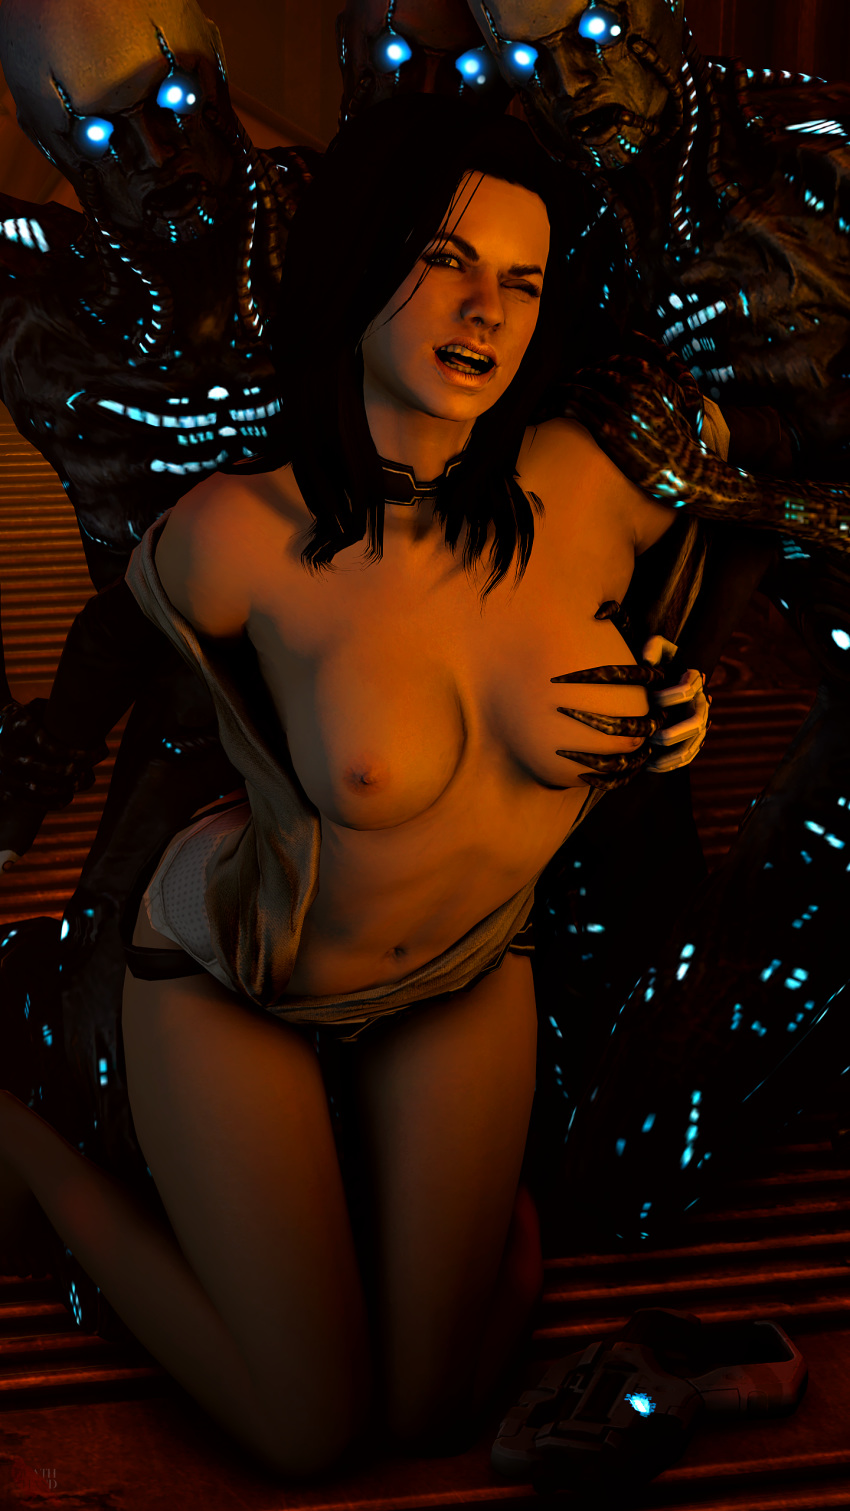 mass effect hentai Hello i was wondering if you could play that song again